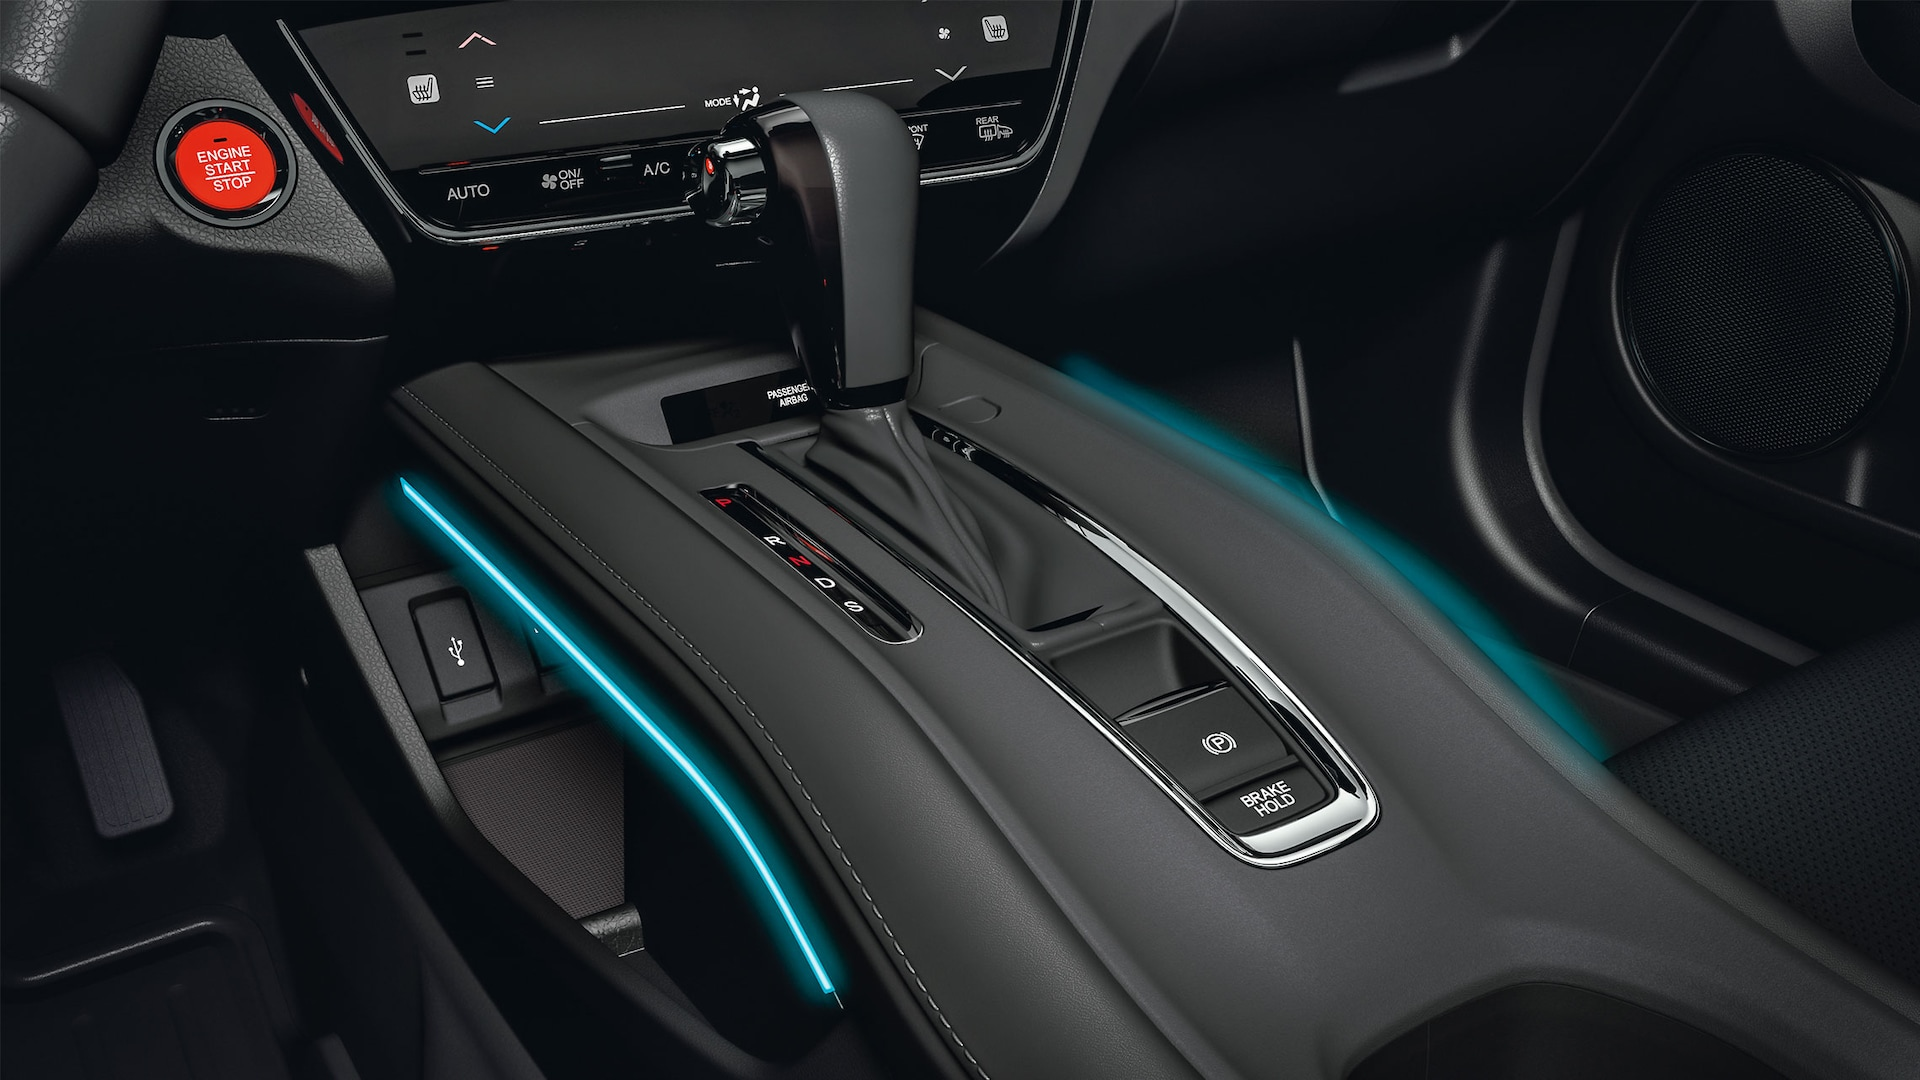 Illuminated center console detail in the 2021 Honda HR-V EX-L.